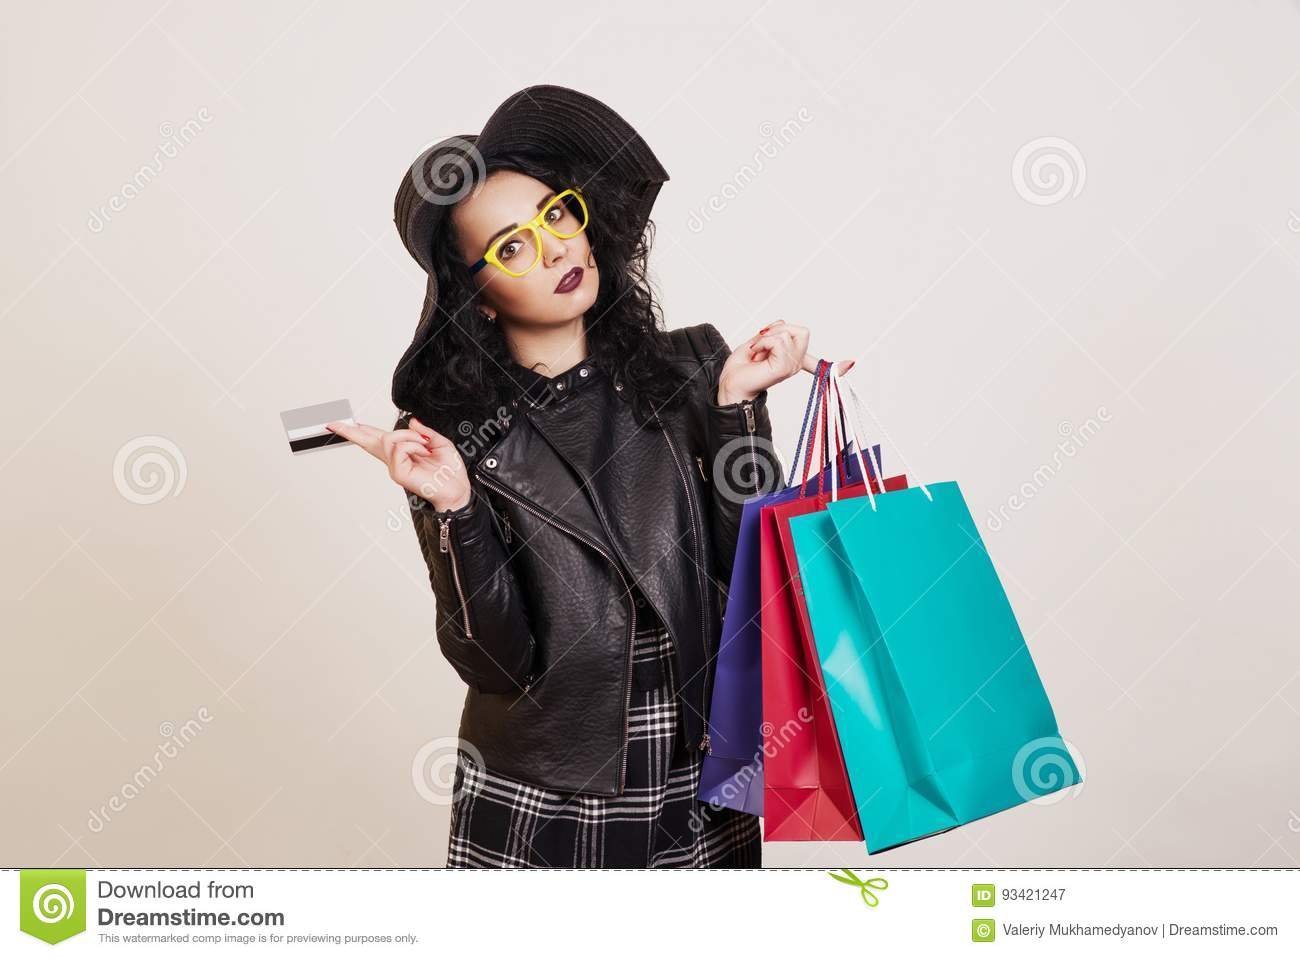 Fashionable young woman in black hat with credit card and colored shopping bags over white studio background.